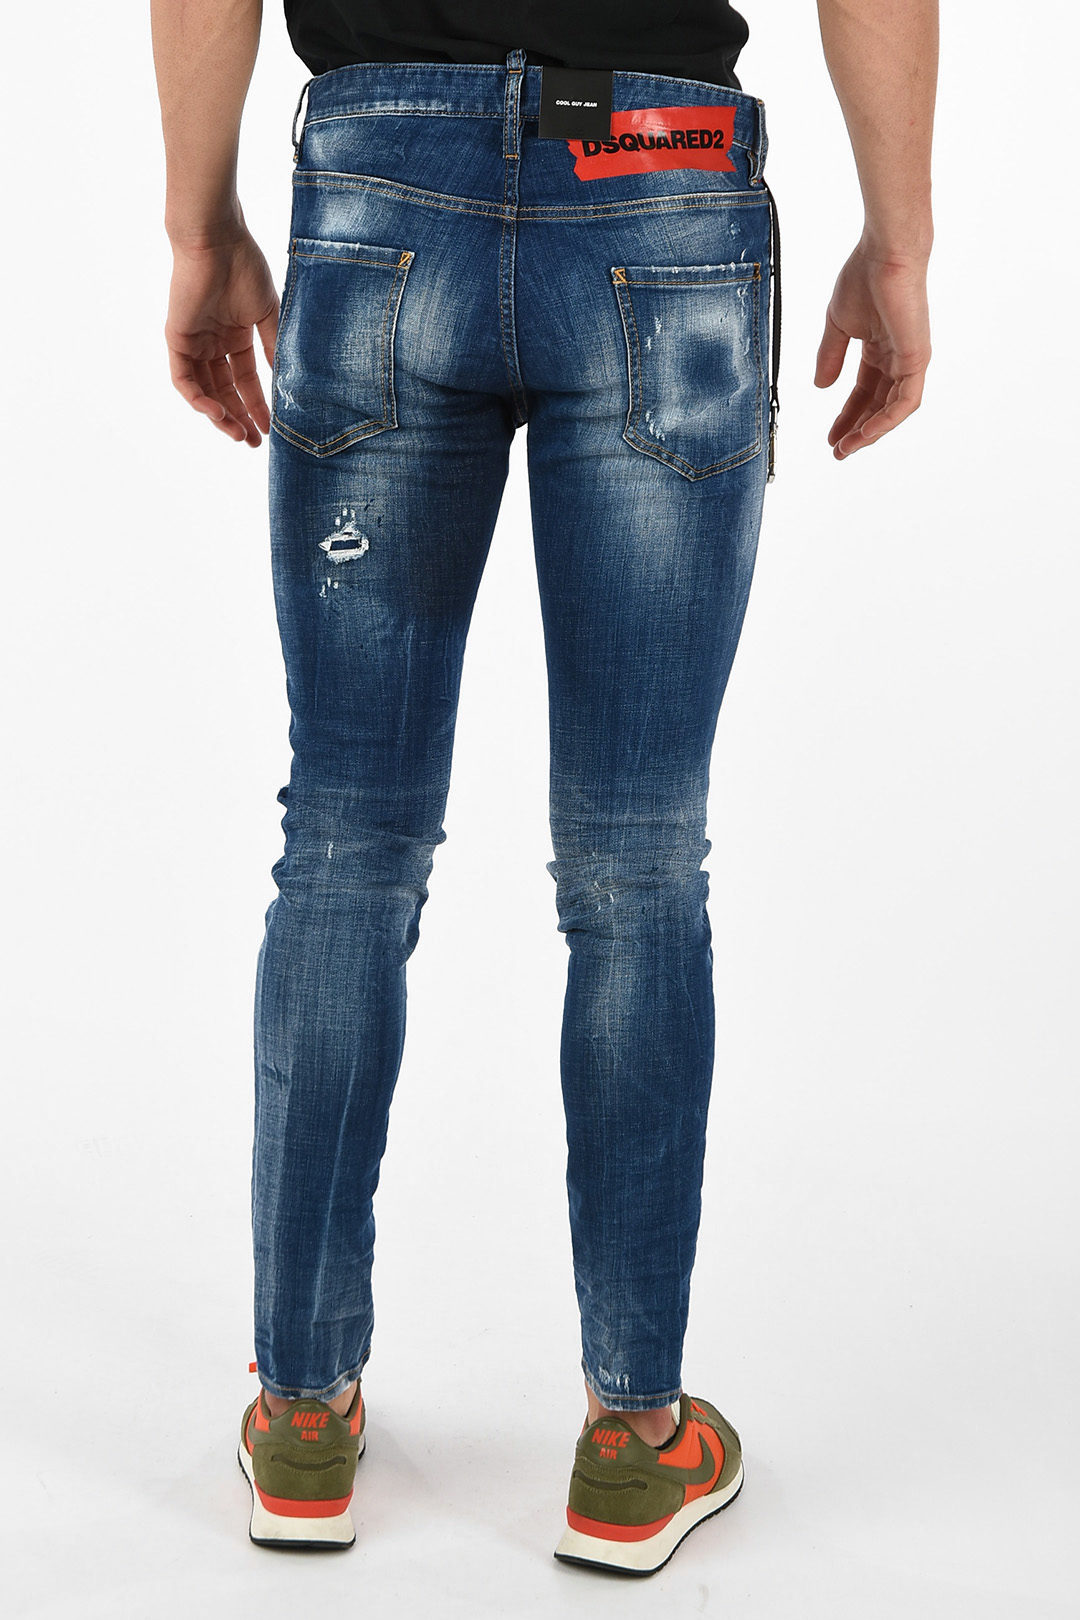 dsquared jeans cool guy sale